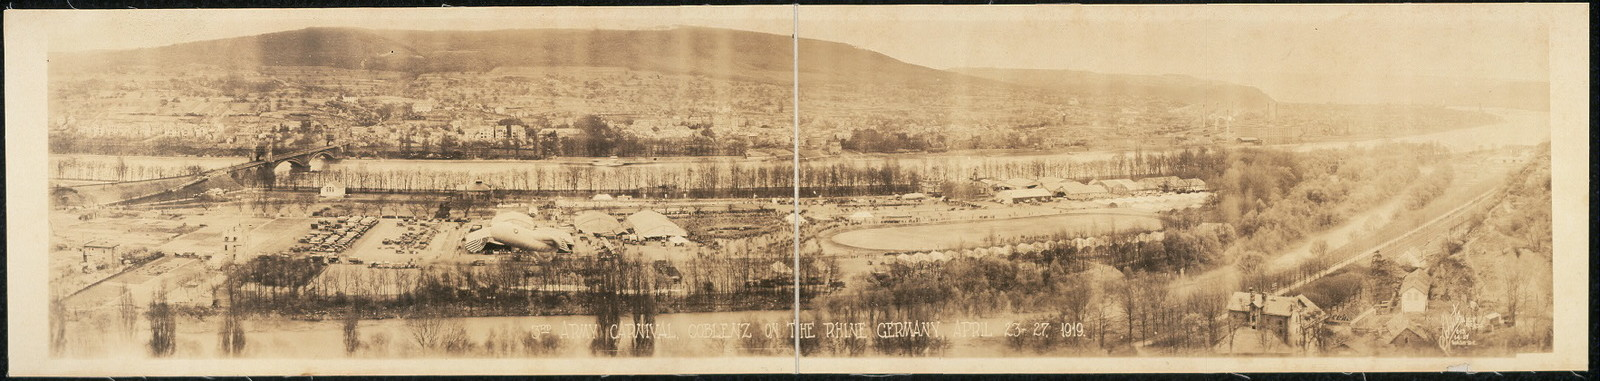 3rd Army carnival, Coblenz on the Rhine, Germany, April 23-27, 1919